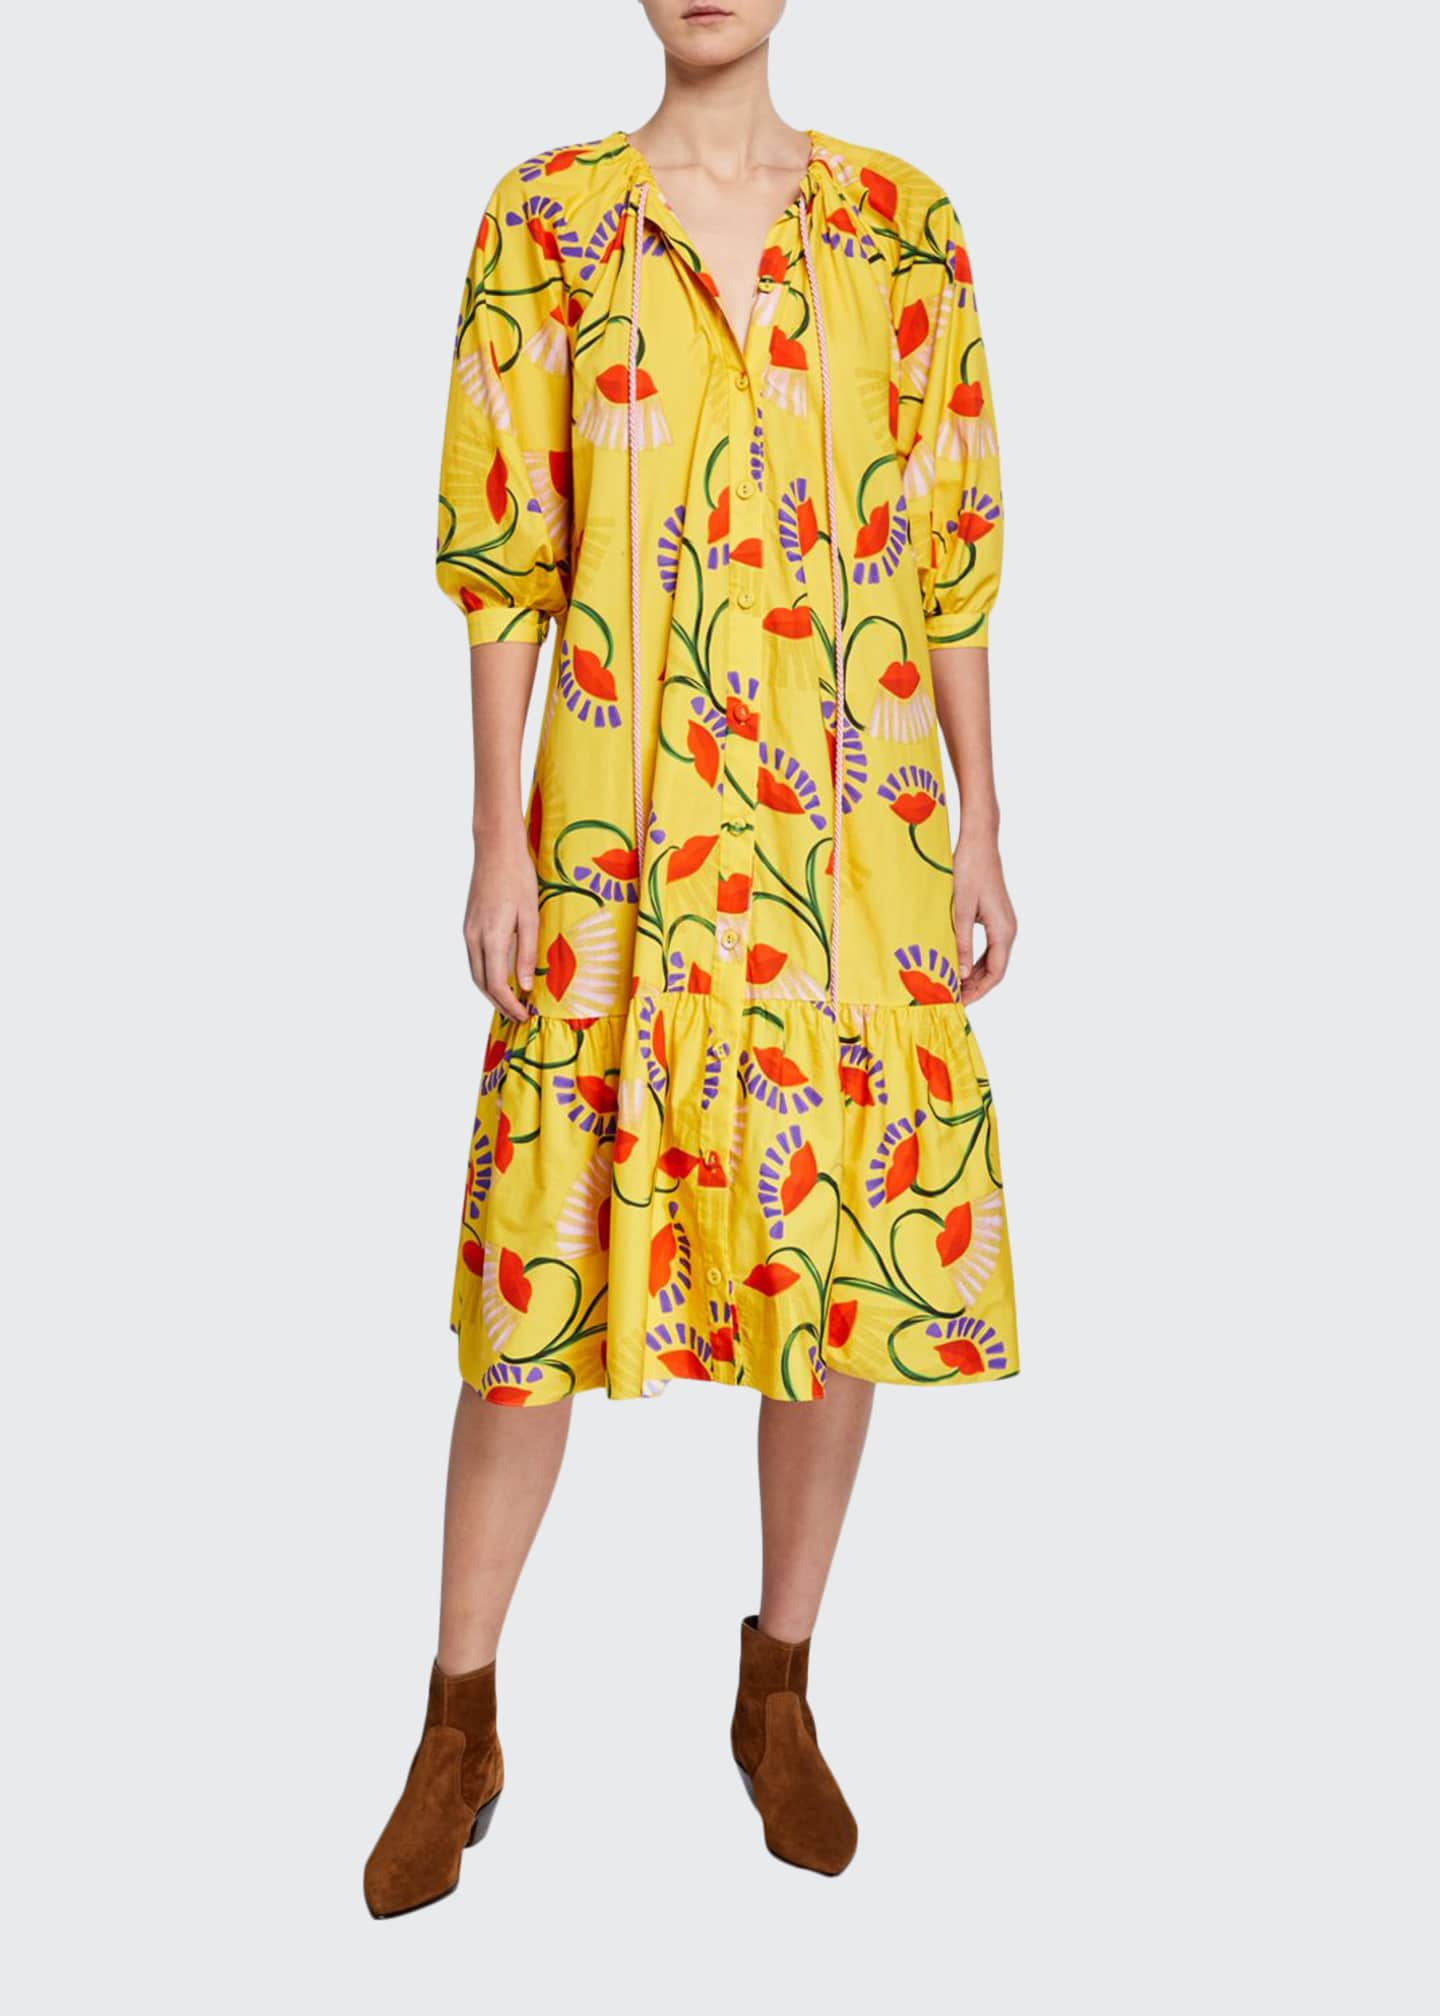 Borgo de Nor Natalia Floral-Print Poplin Tunic Dress